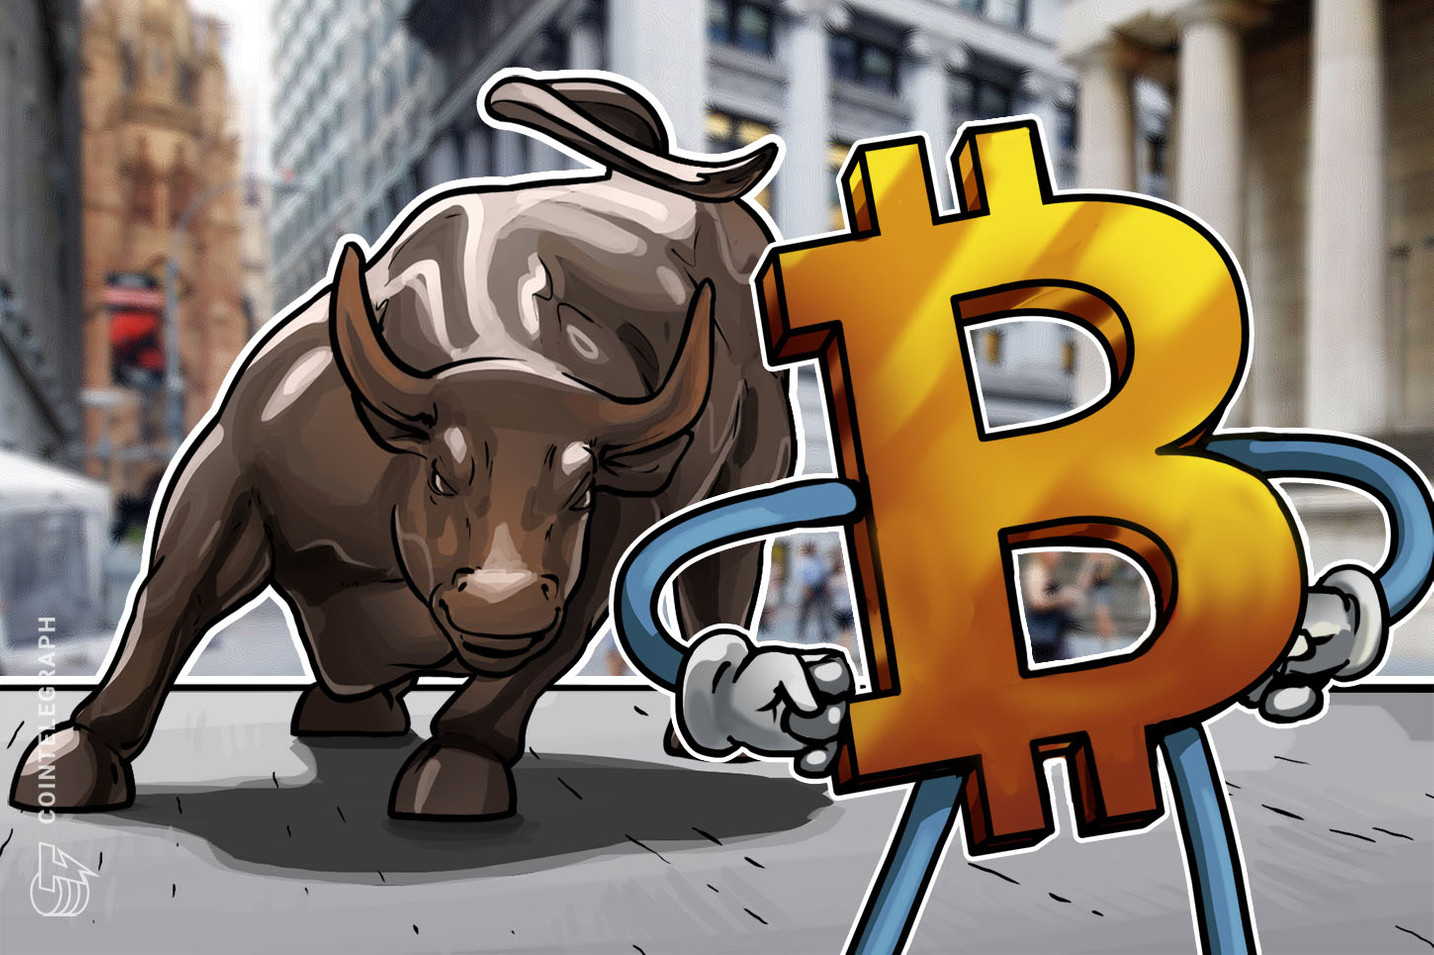 Stock Market Crash Threatens Bullish Bitcoin Consolidation Sub-$10K